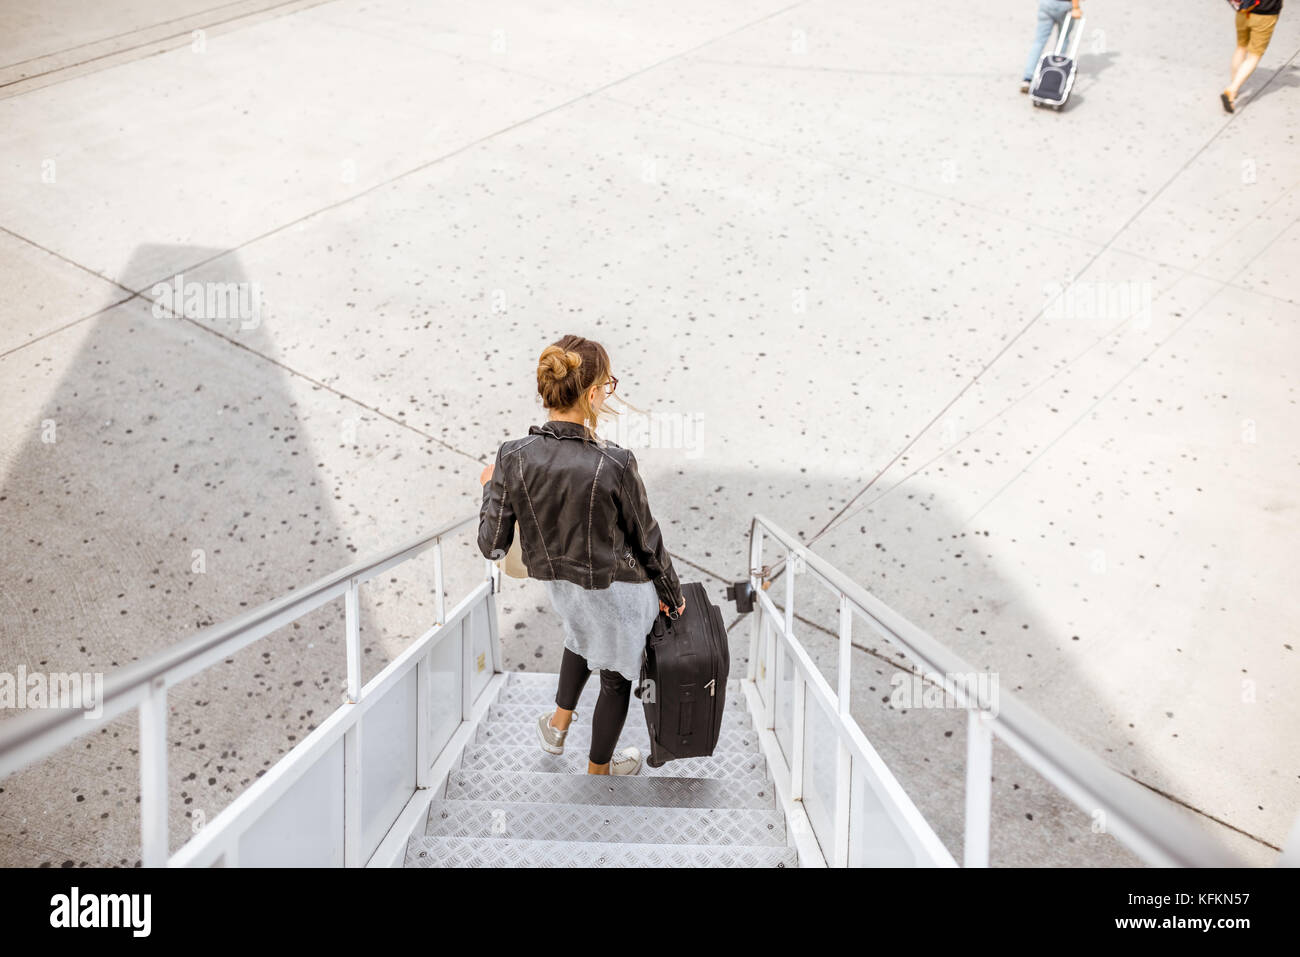 Woman walking out the airplane - Stock Image